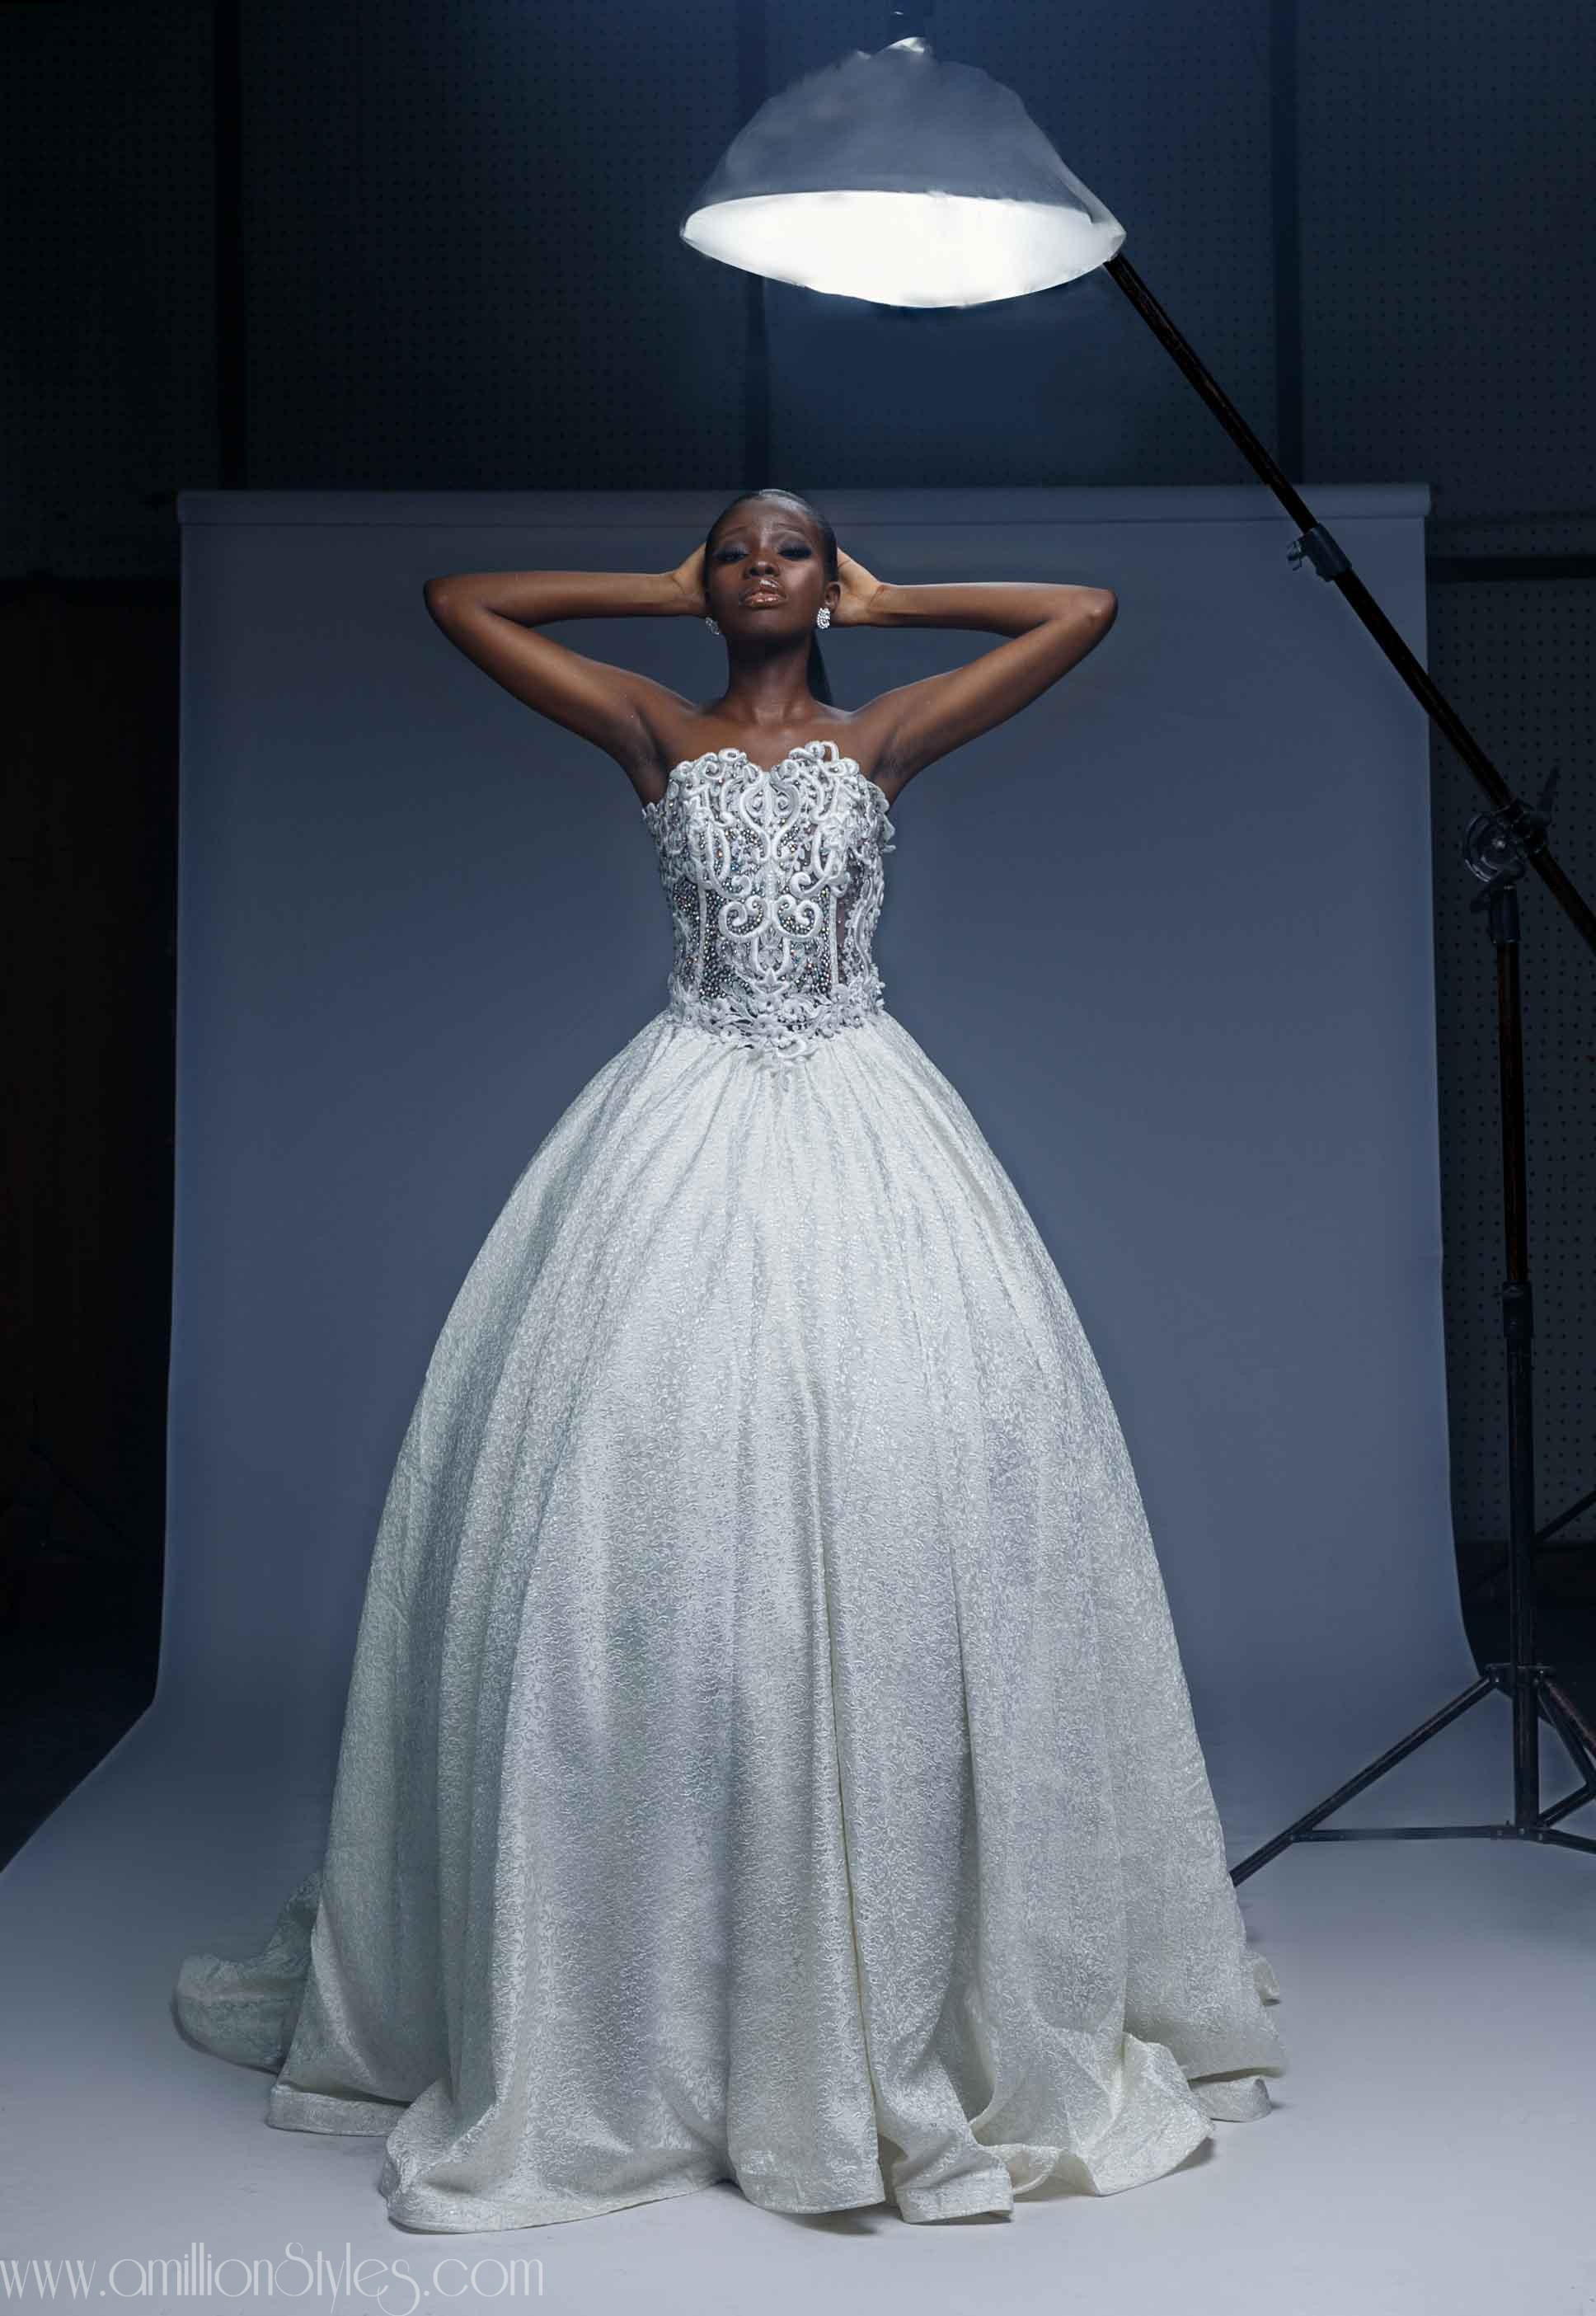 """De Lujo"" is the New Bridal Collection By Zhalima Grazioni"